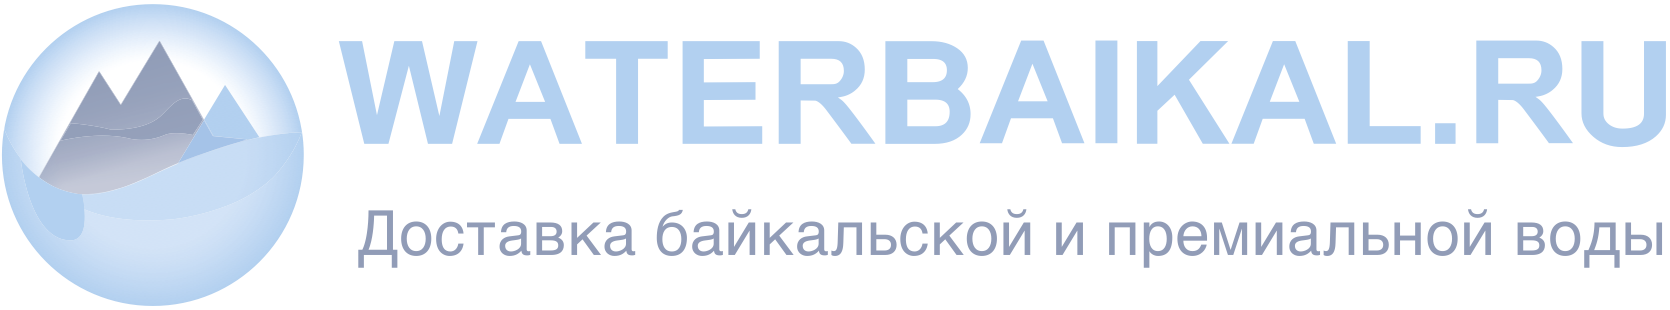 WATERBAIKAL.RU